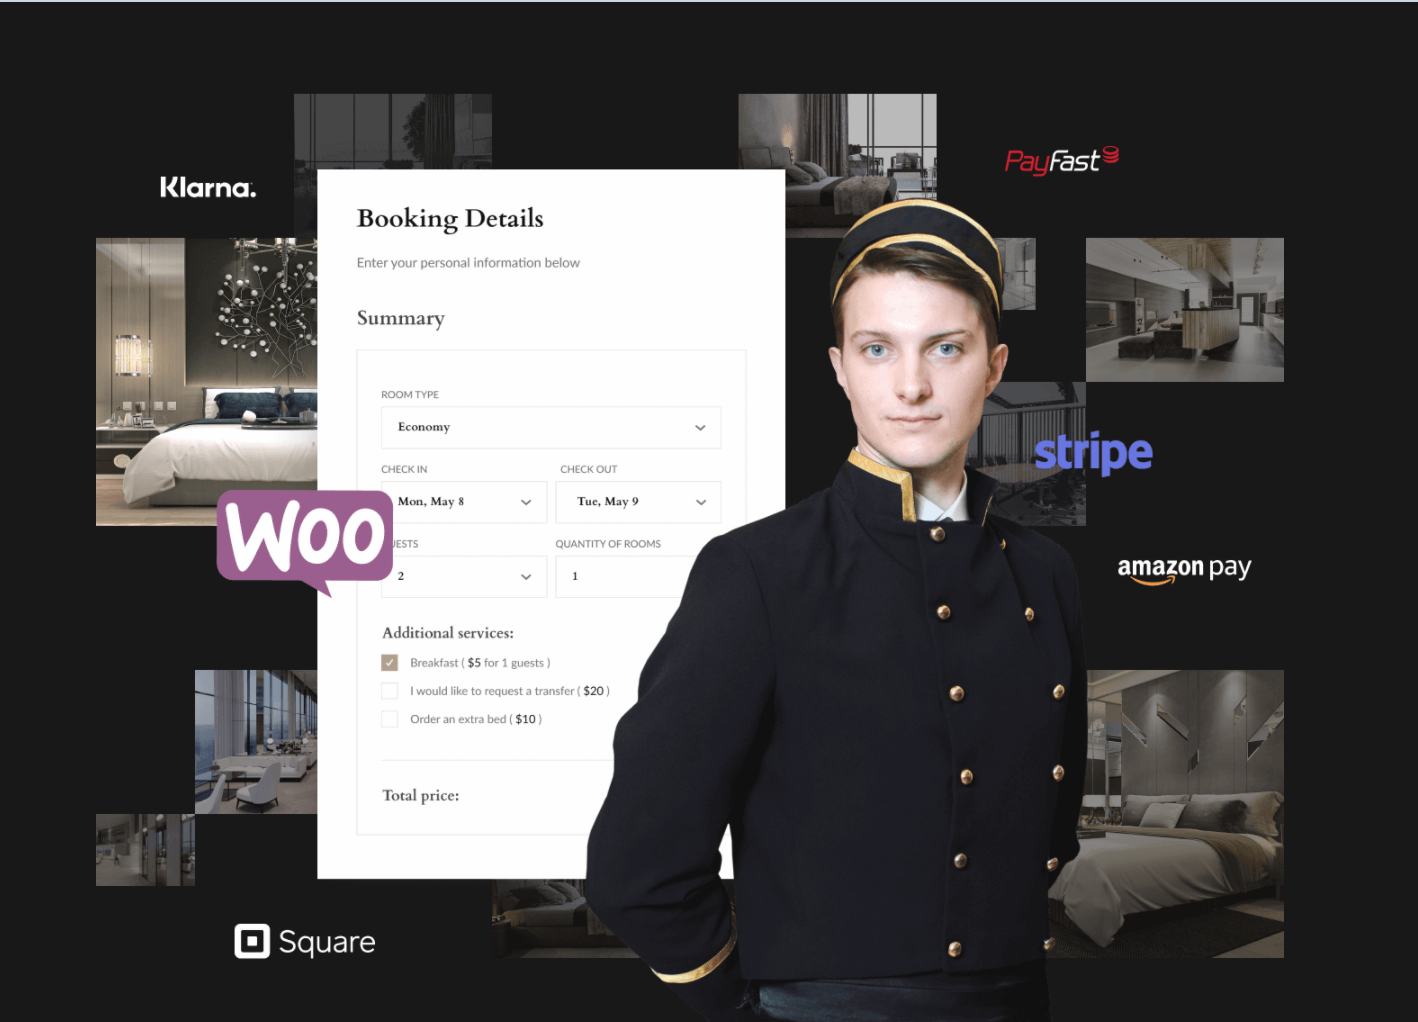 Hotel Booking Website for large hotels